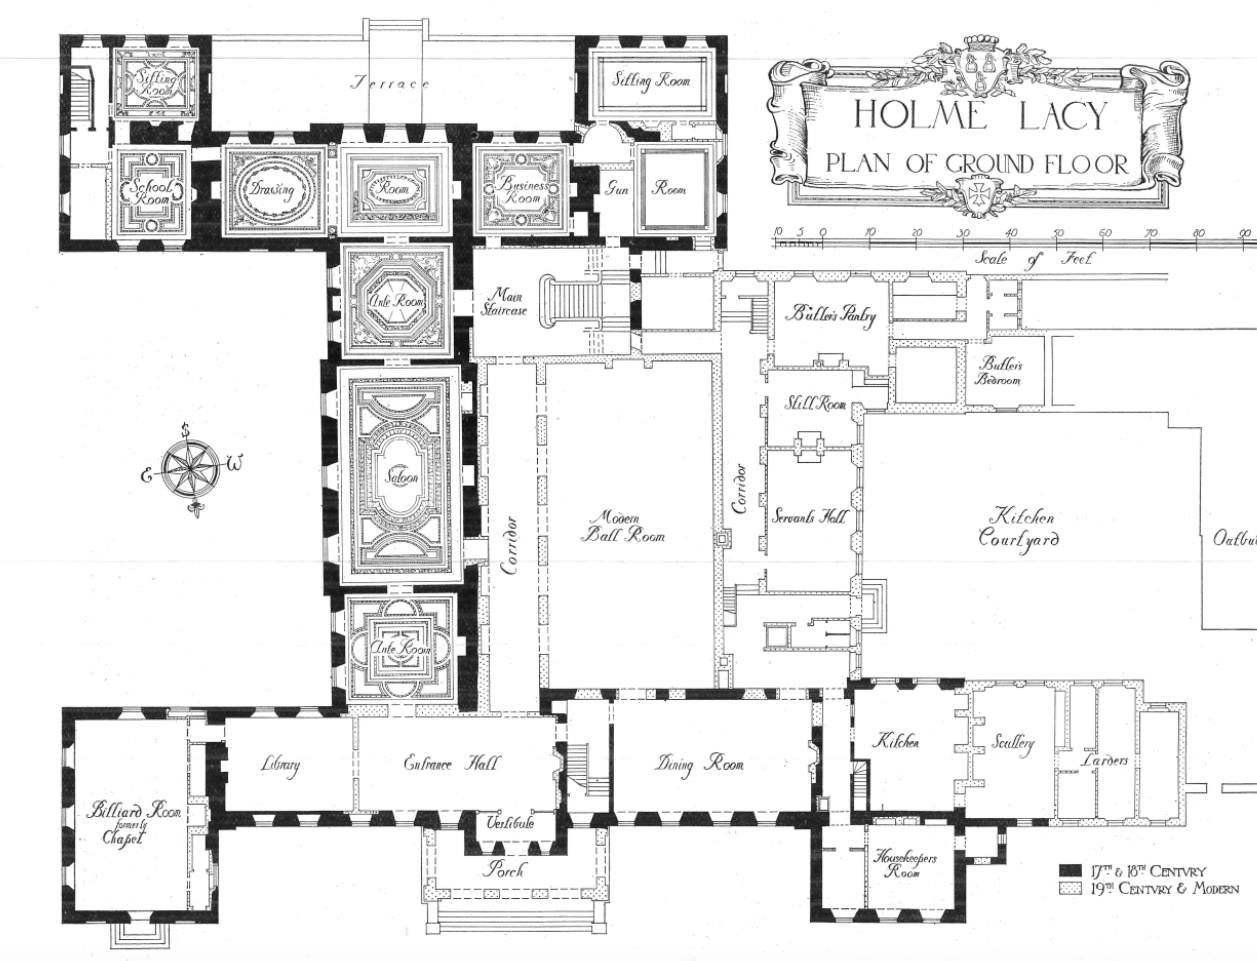 Holme Lacy House. Herefordshire, England. Builder: Anthony ... on artisan house plans, indies house plans, devon house plans, design source house plans, guam house plans, vampire house plans, celtic house plans, whitmore house plans, bearden house plans, summer camp house plans, southampton house plans, almas house plans, rome house plans, americas house plans, canterbury house plans, pacific northwest house plans, holloway house plans, switzerland house plans, norway house plans, egypt house plans,